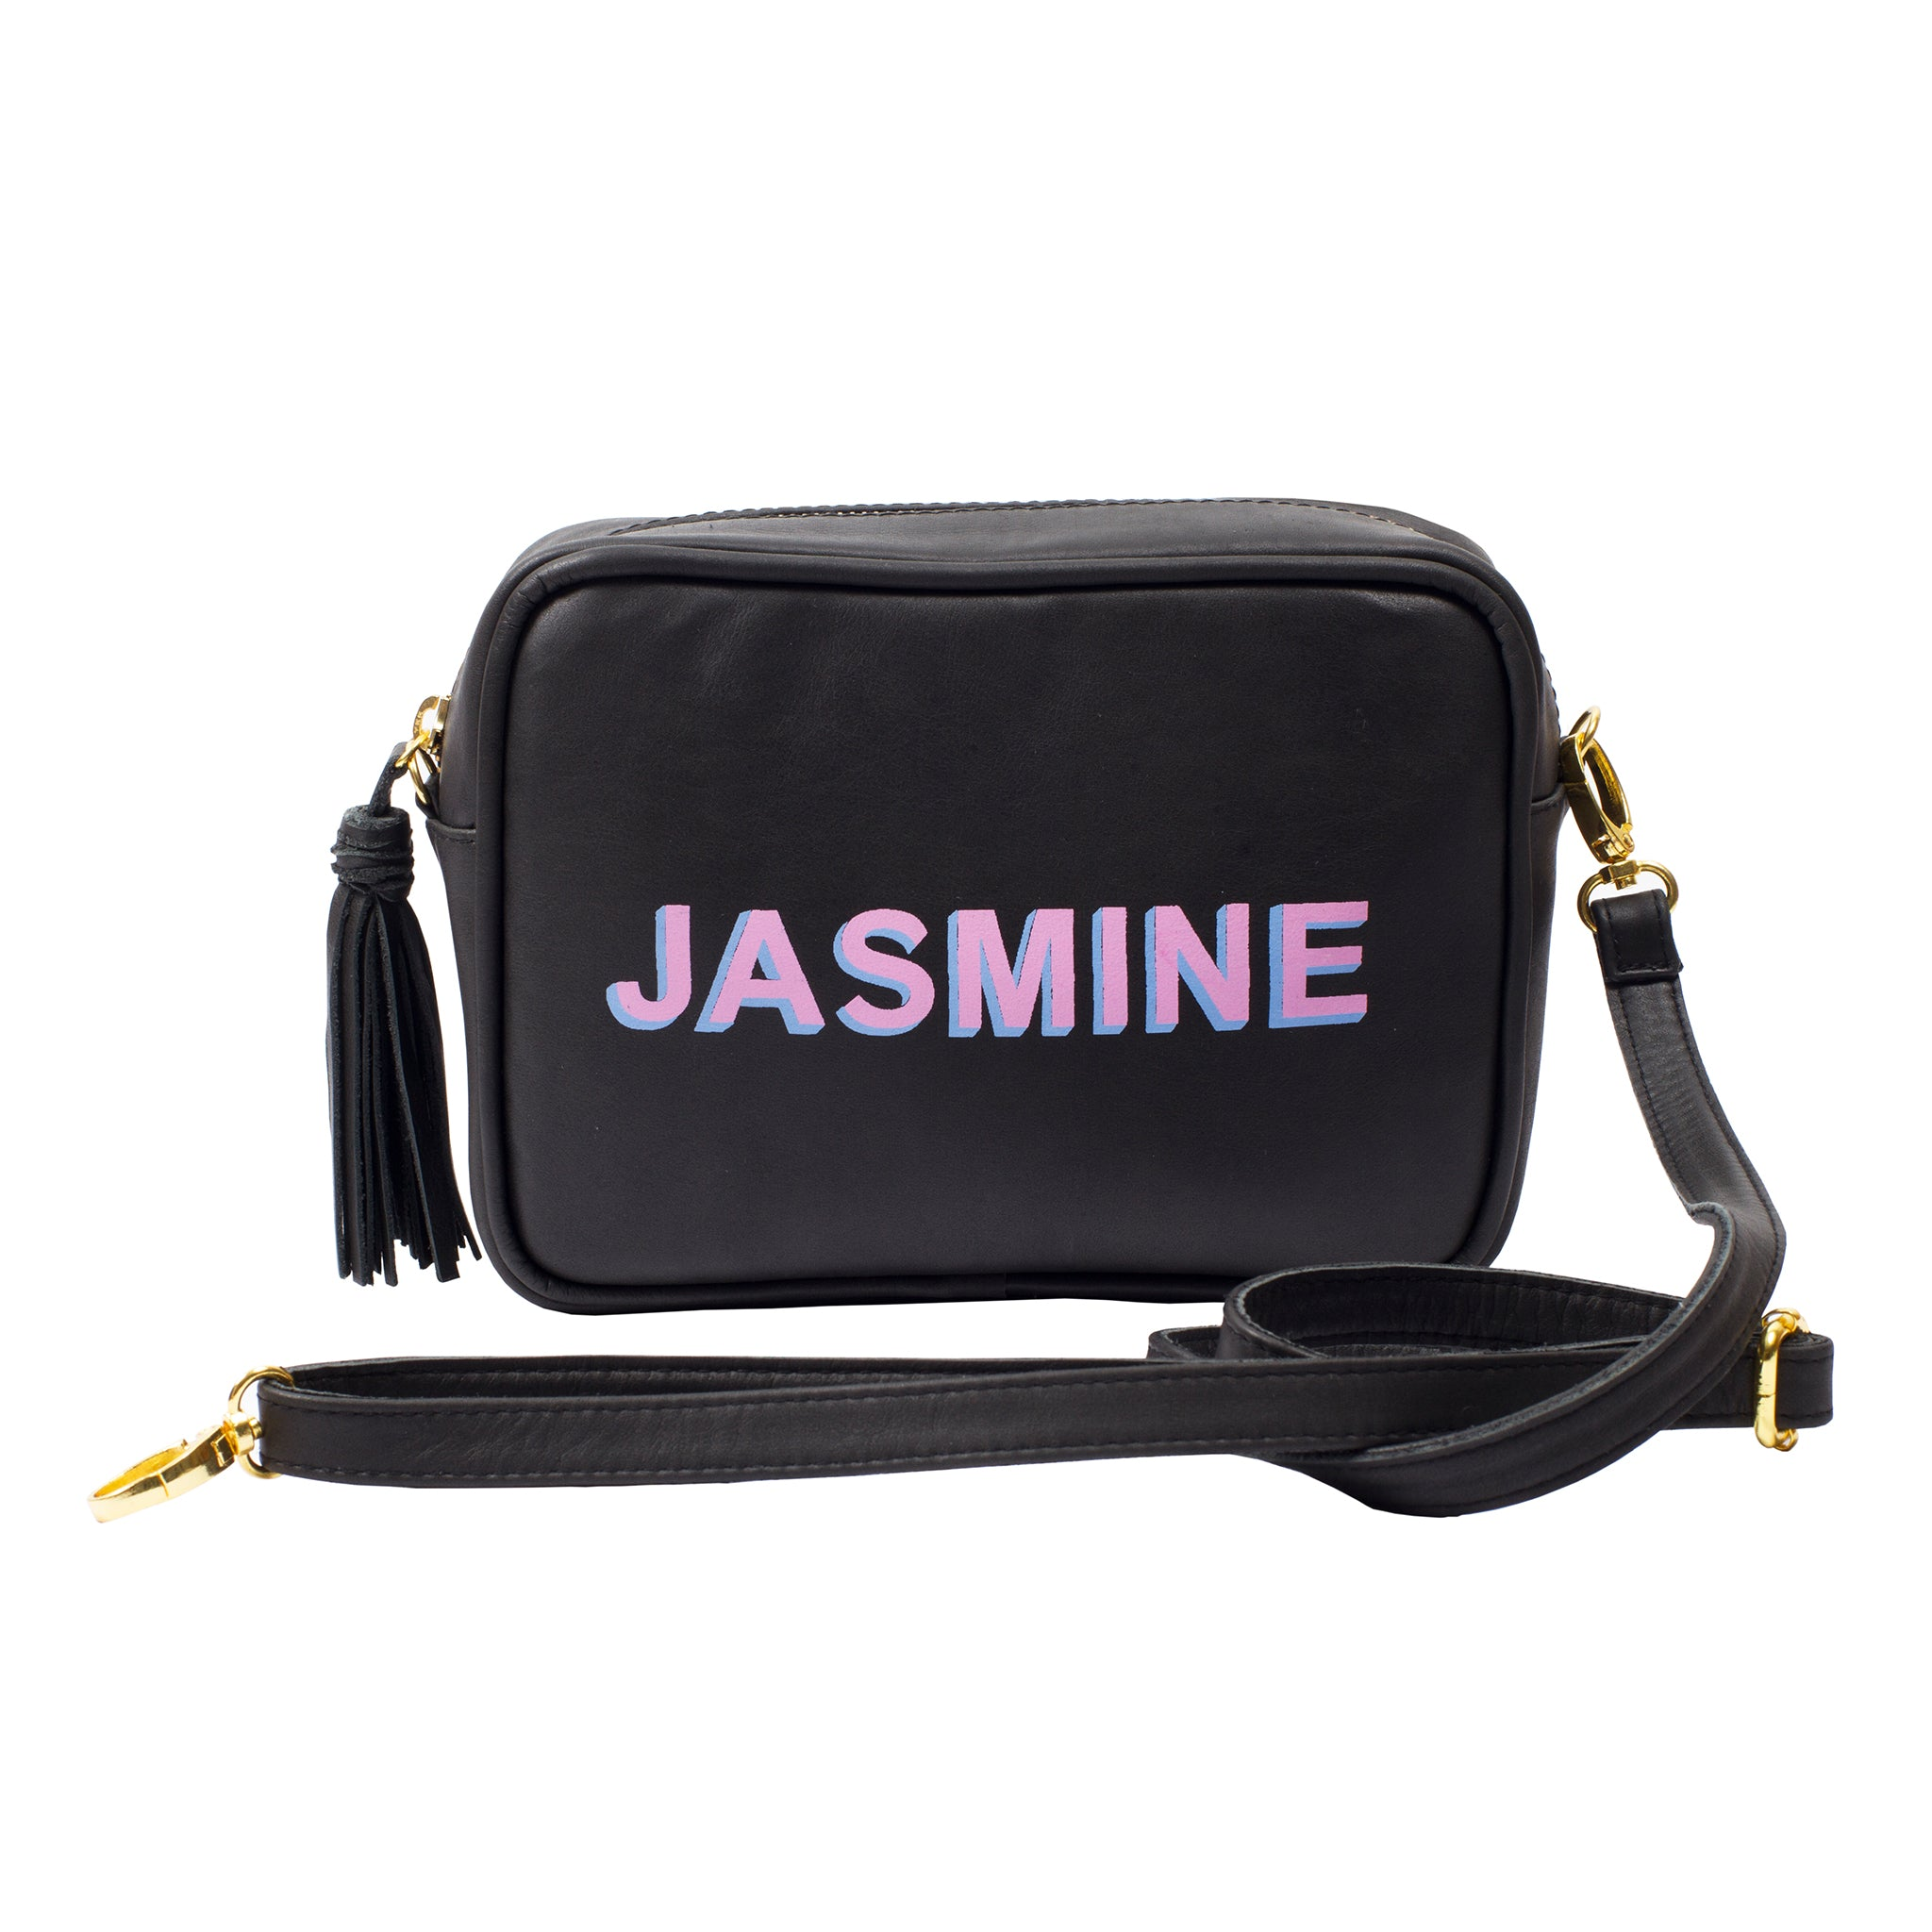 Crossbody; Shoulder Bag; Black Camera bag; Shadow text Handbag; Personalized Handbag; Monogram Handbag; Black Camera Bag; Leather Camera Bag